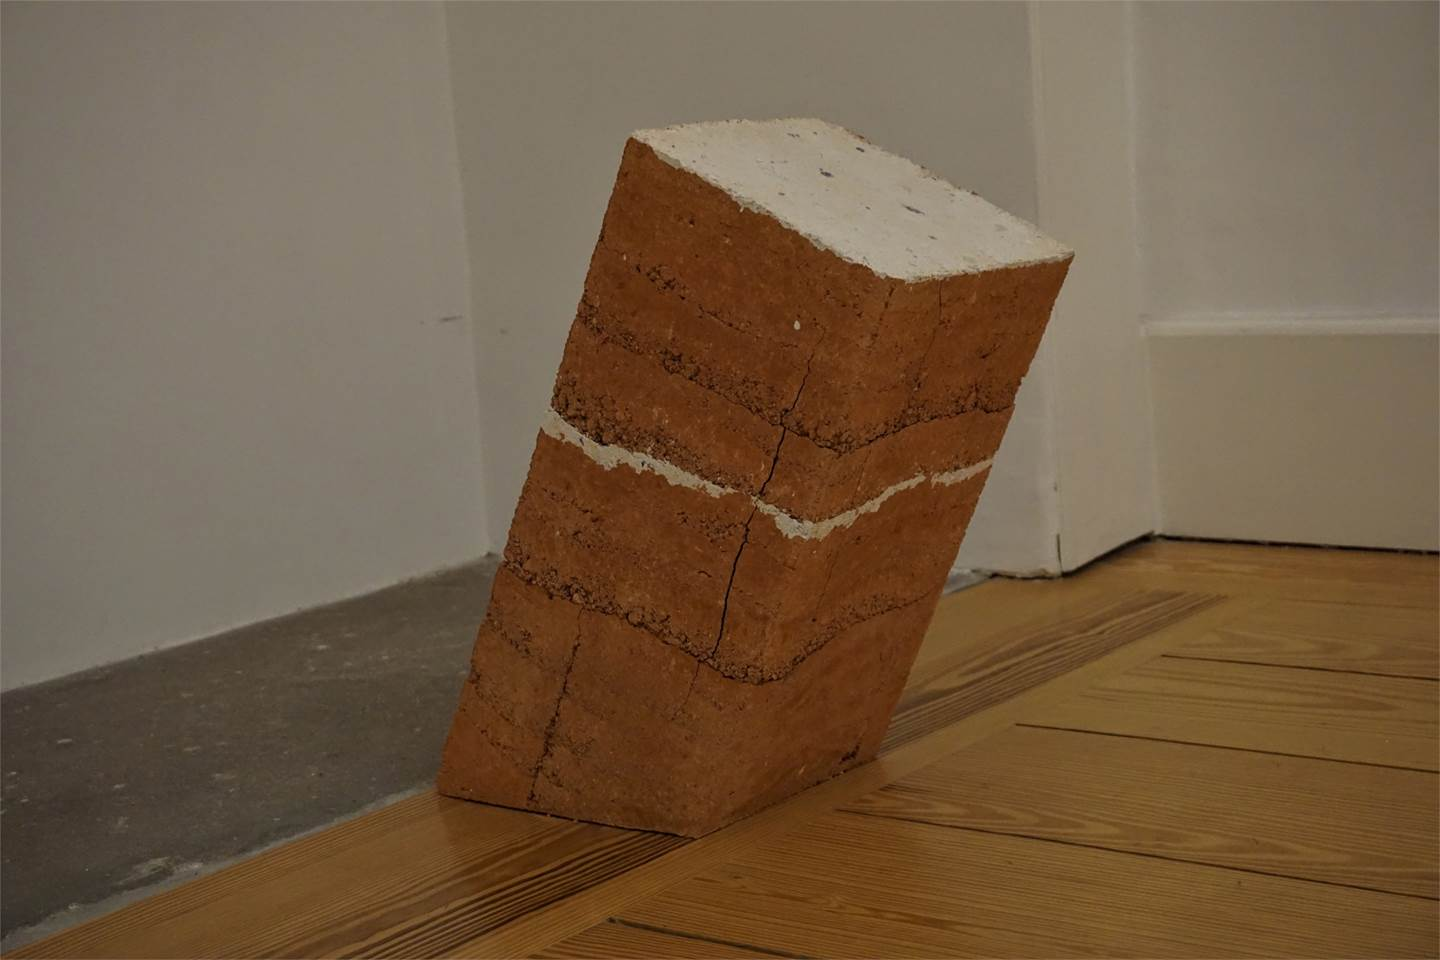 Decadência, original Abstract Clay Sculpture by Jéssica Burrinha